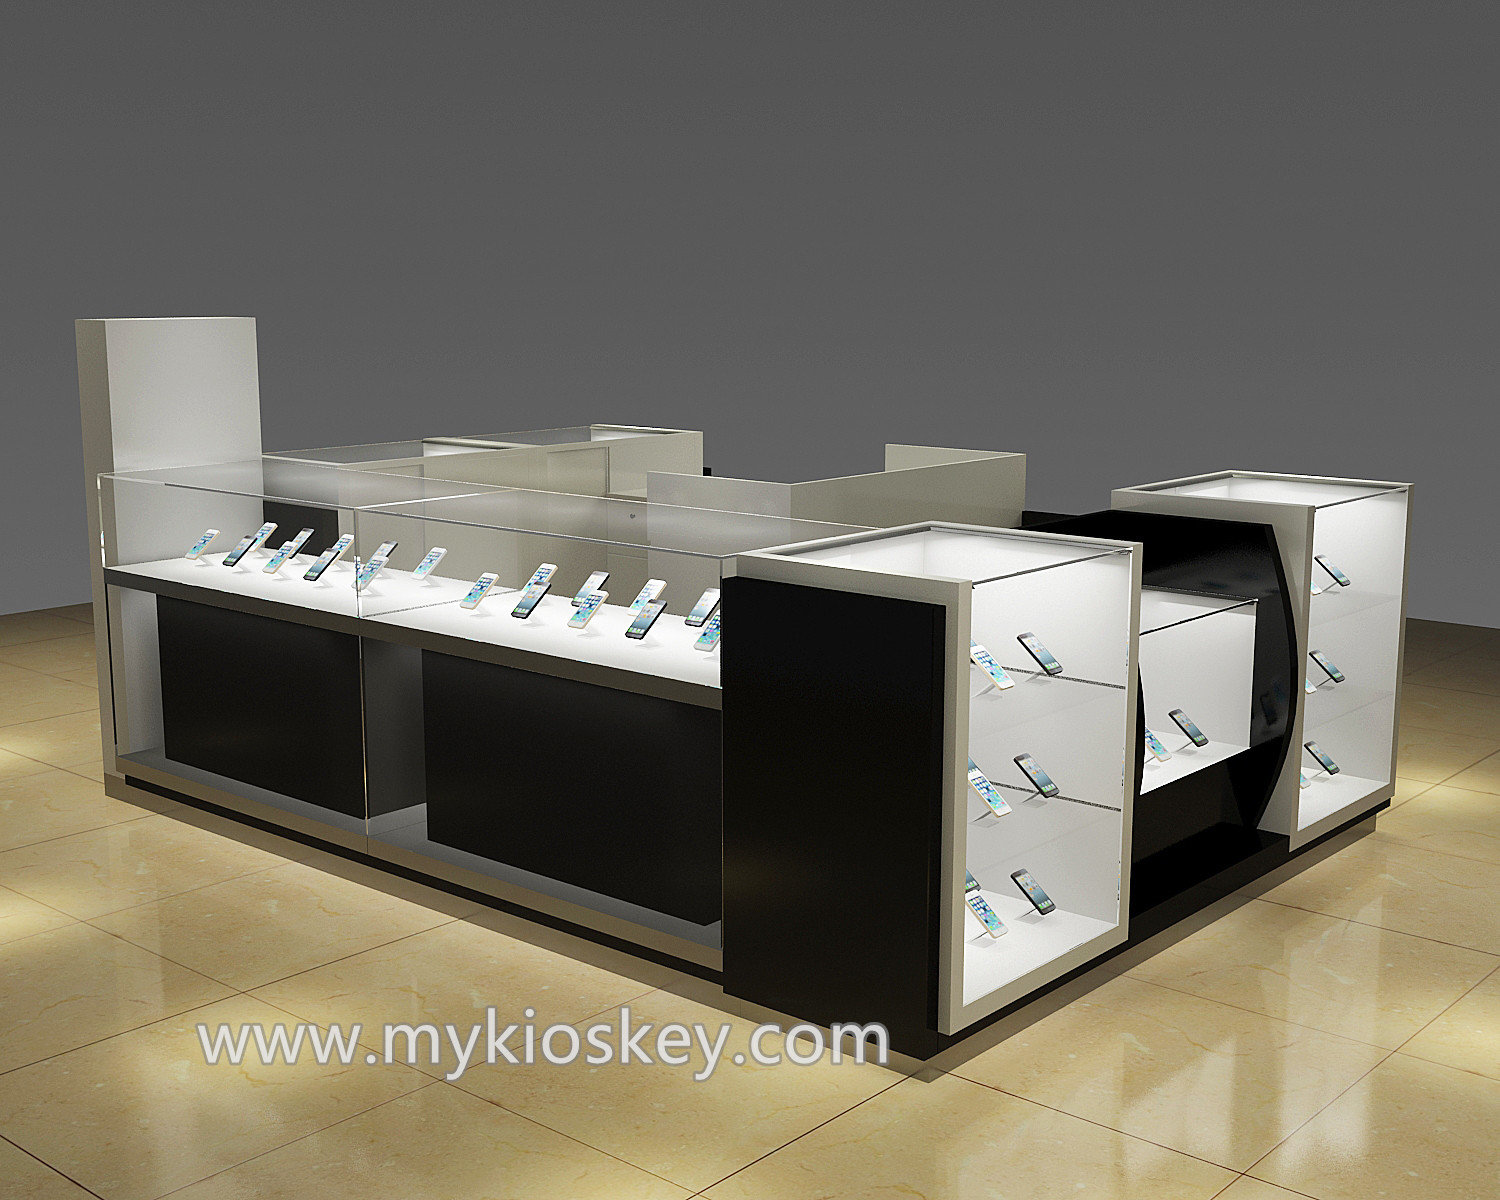 Modern glass mobile accessories kiosk in shopping mall for Mobili kios